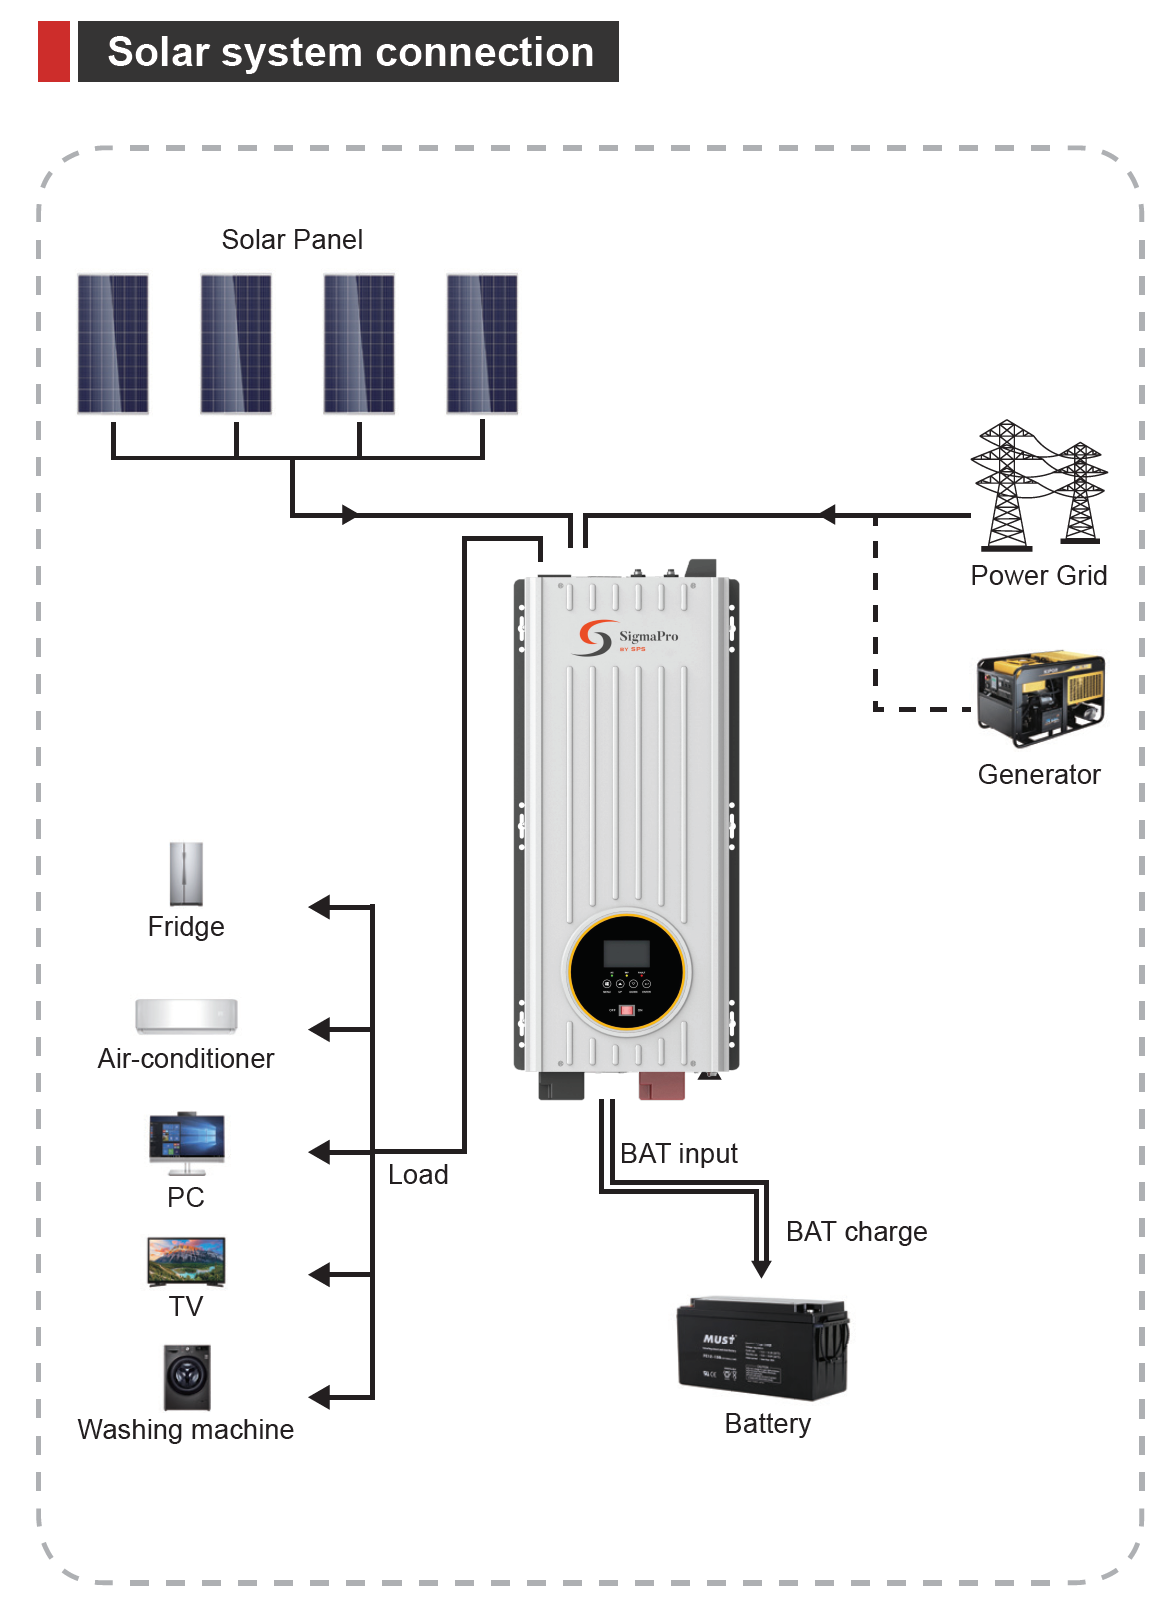 single phase 120v pure sine wave solar charger inverter, 1500W pure sine wave inverter, 3000w pure sine wave interver, 4000w pure sine wave inverter, whole home battery backup, battery backup, pure sine wave inverter, solar inverter, inverter with solar controller, pure sine wave inverter with solar controller, battery backup with solar, inverter compatible with generator, off grid ups, RV inverter, boat inverter, home inverter